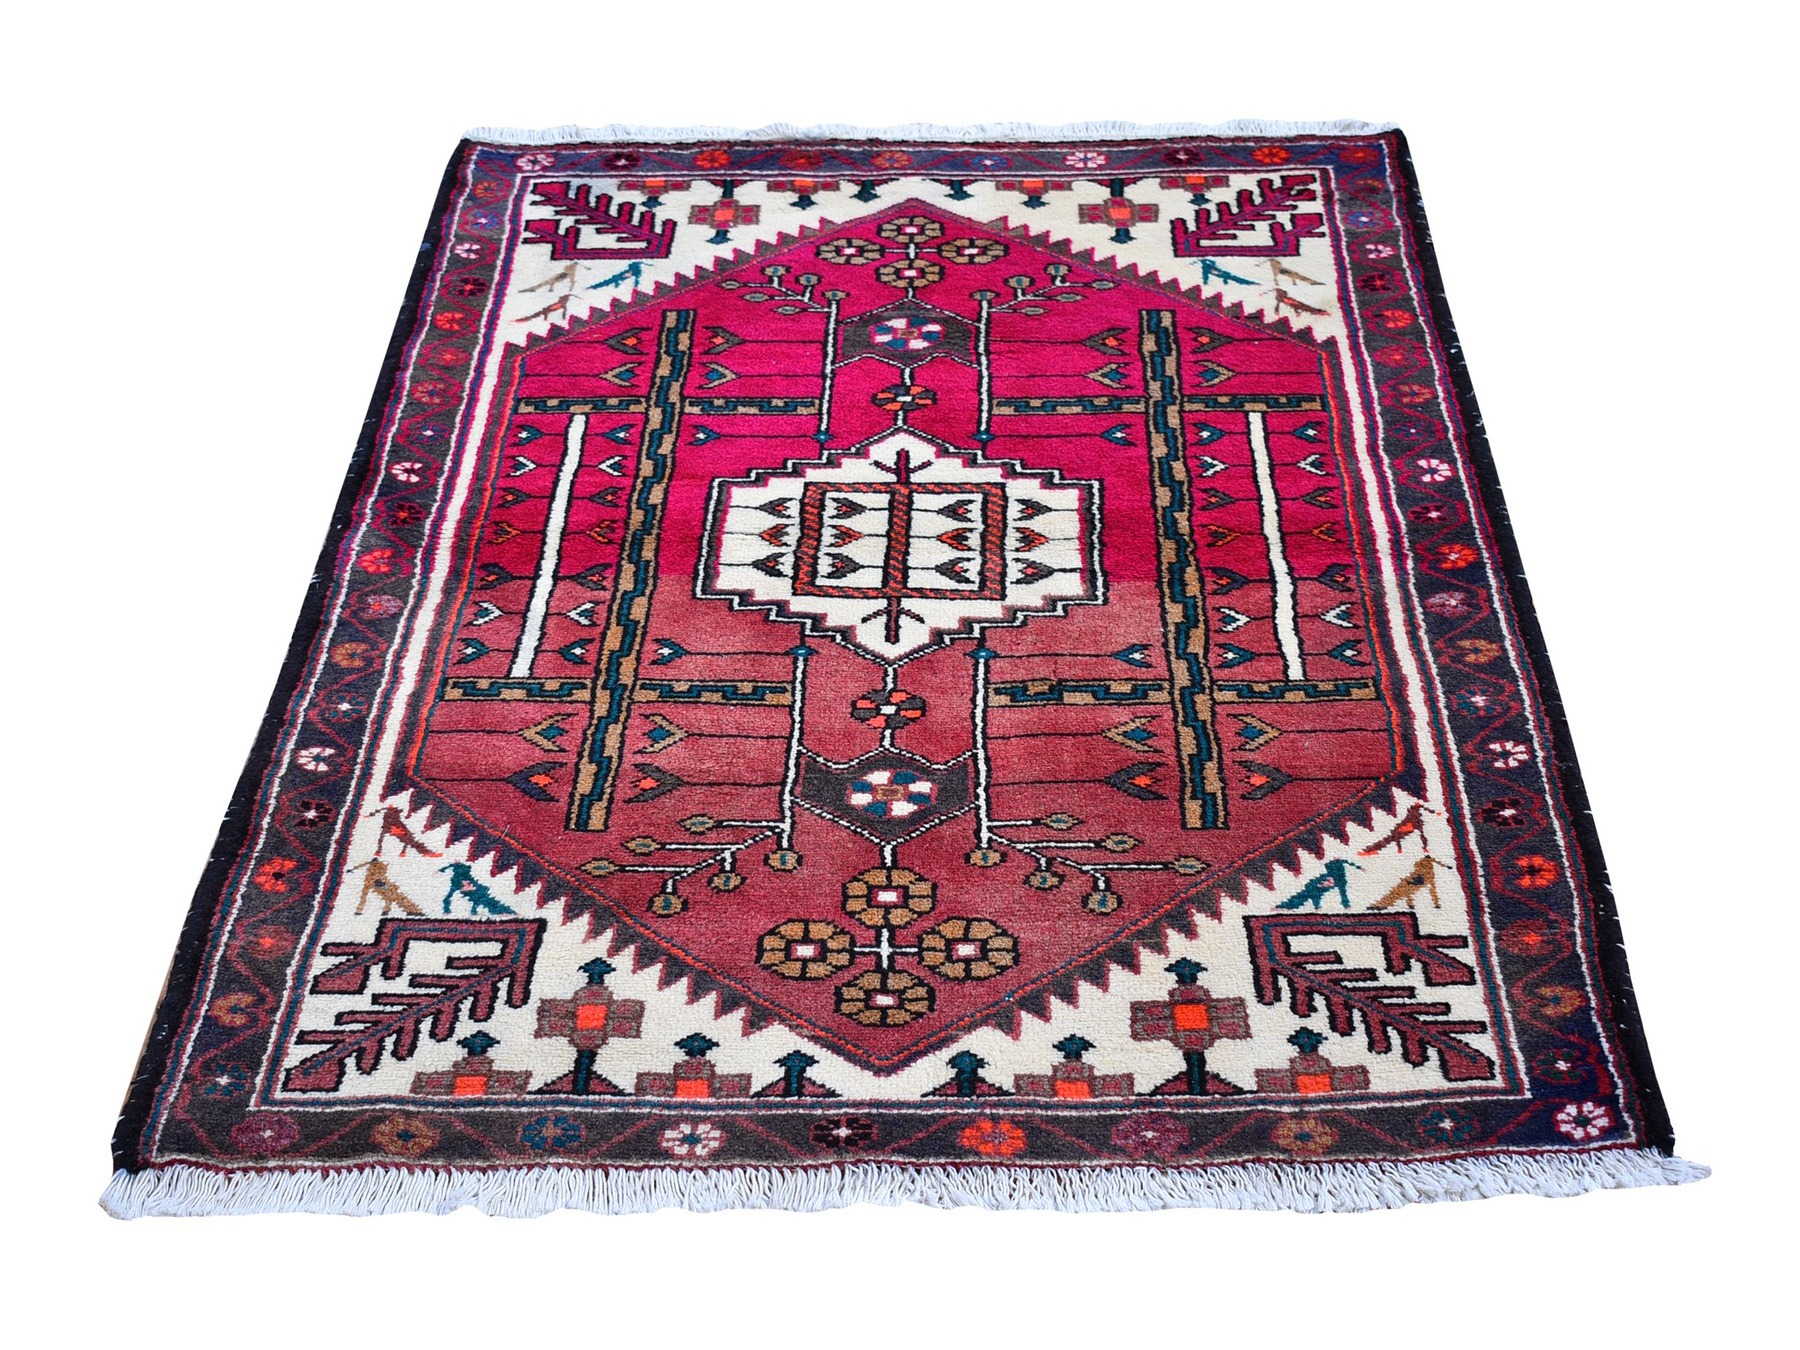 Persian Rugs LUV596970